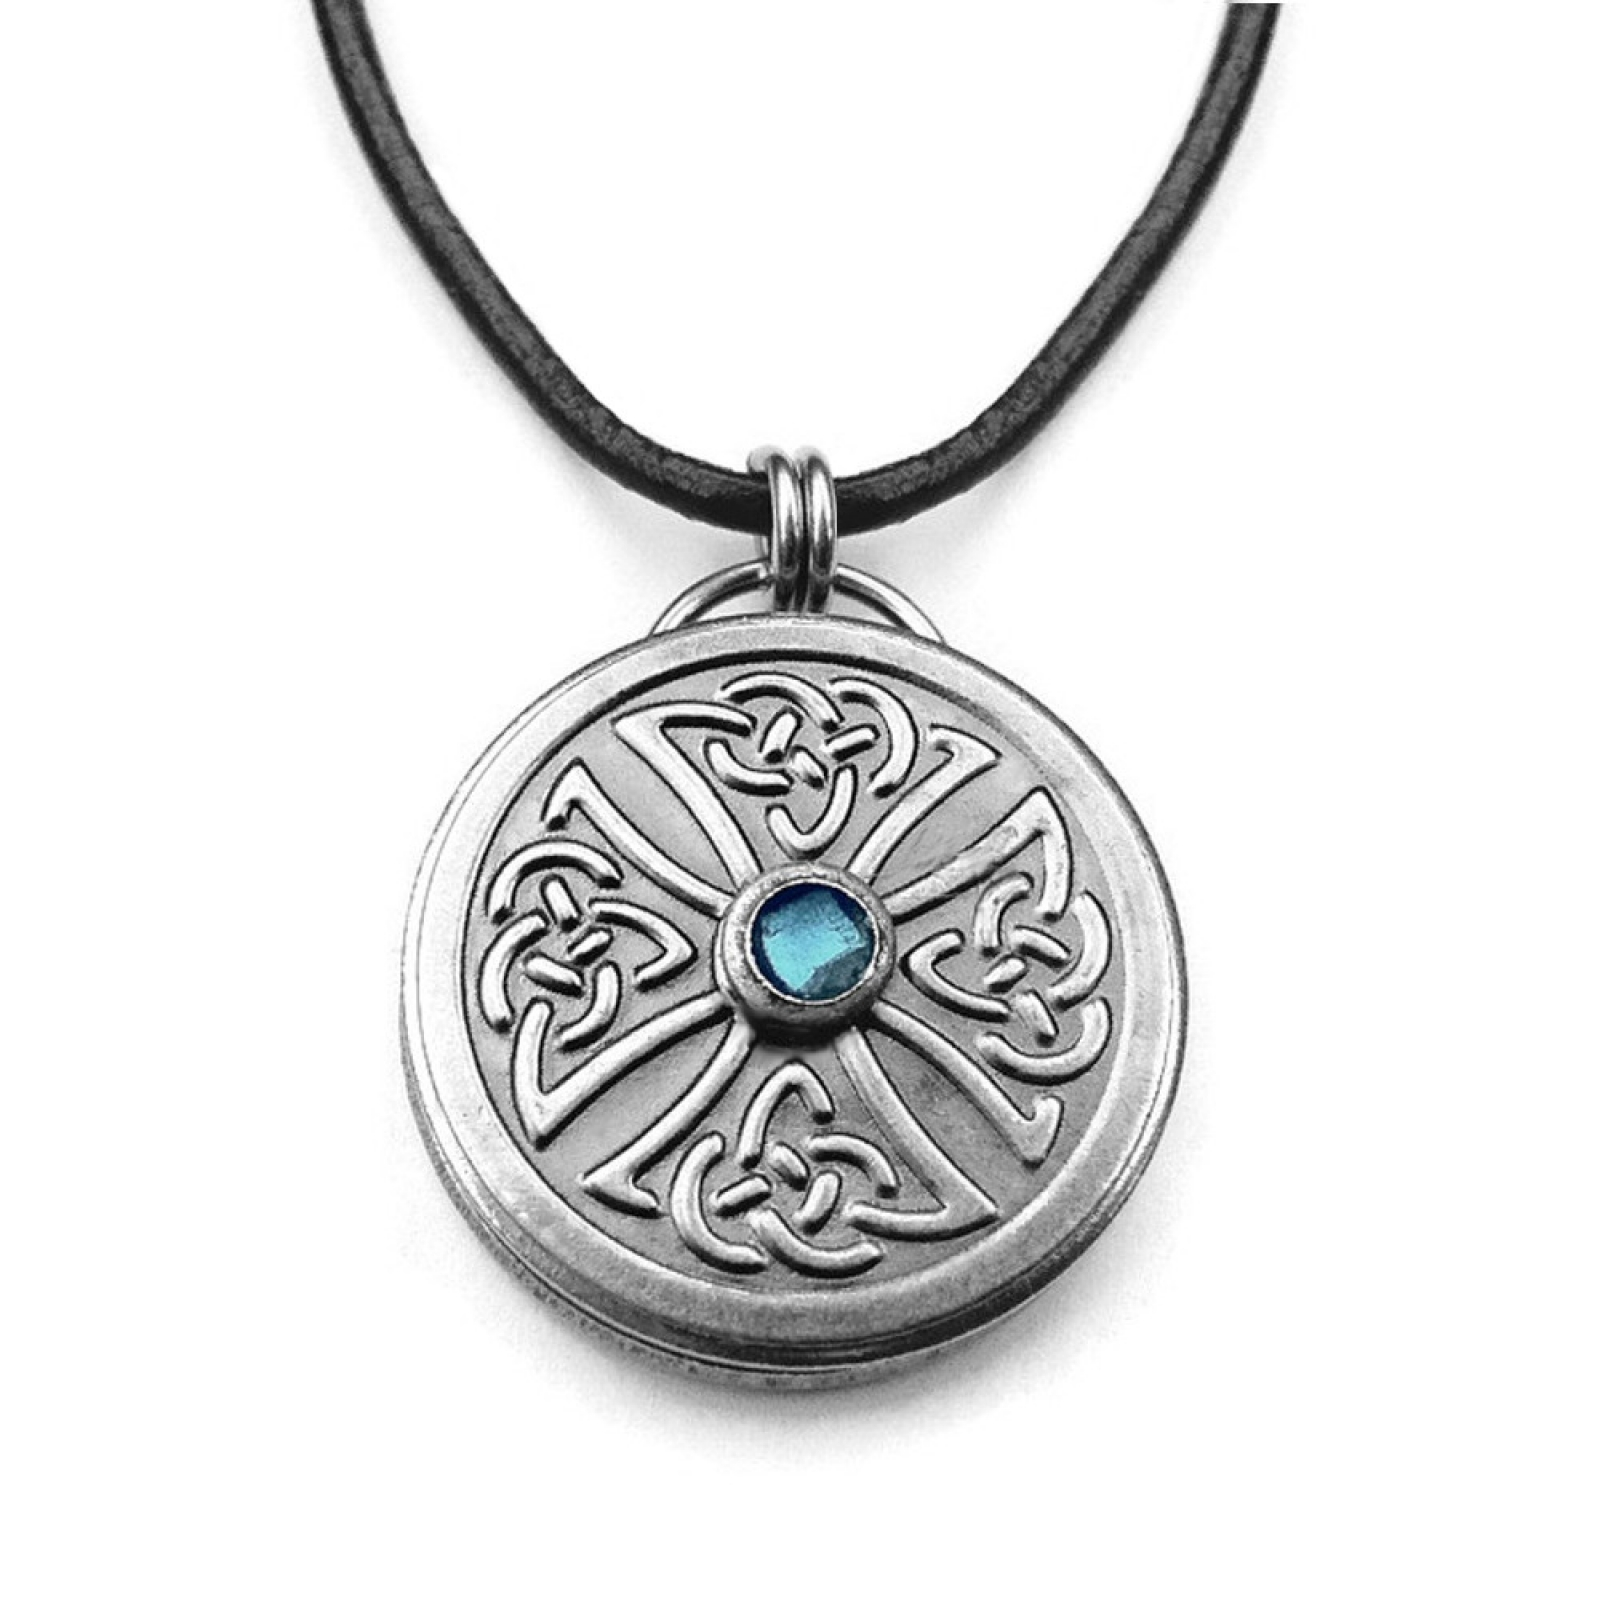 necklaces sterling love irish jewelry vintage item luck in good necklace pendant triangle knot from gifts celtic silver heart women for fine